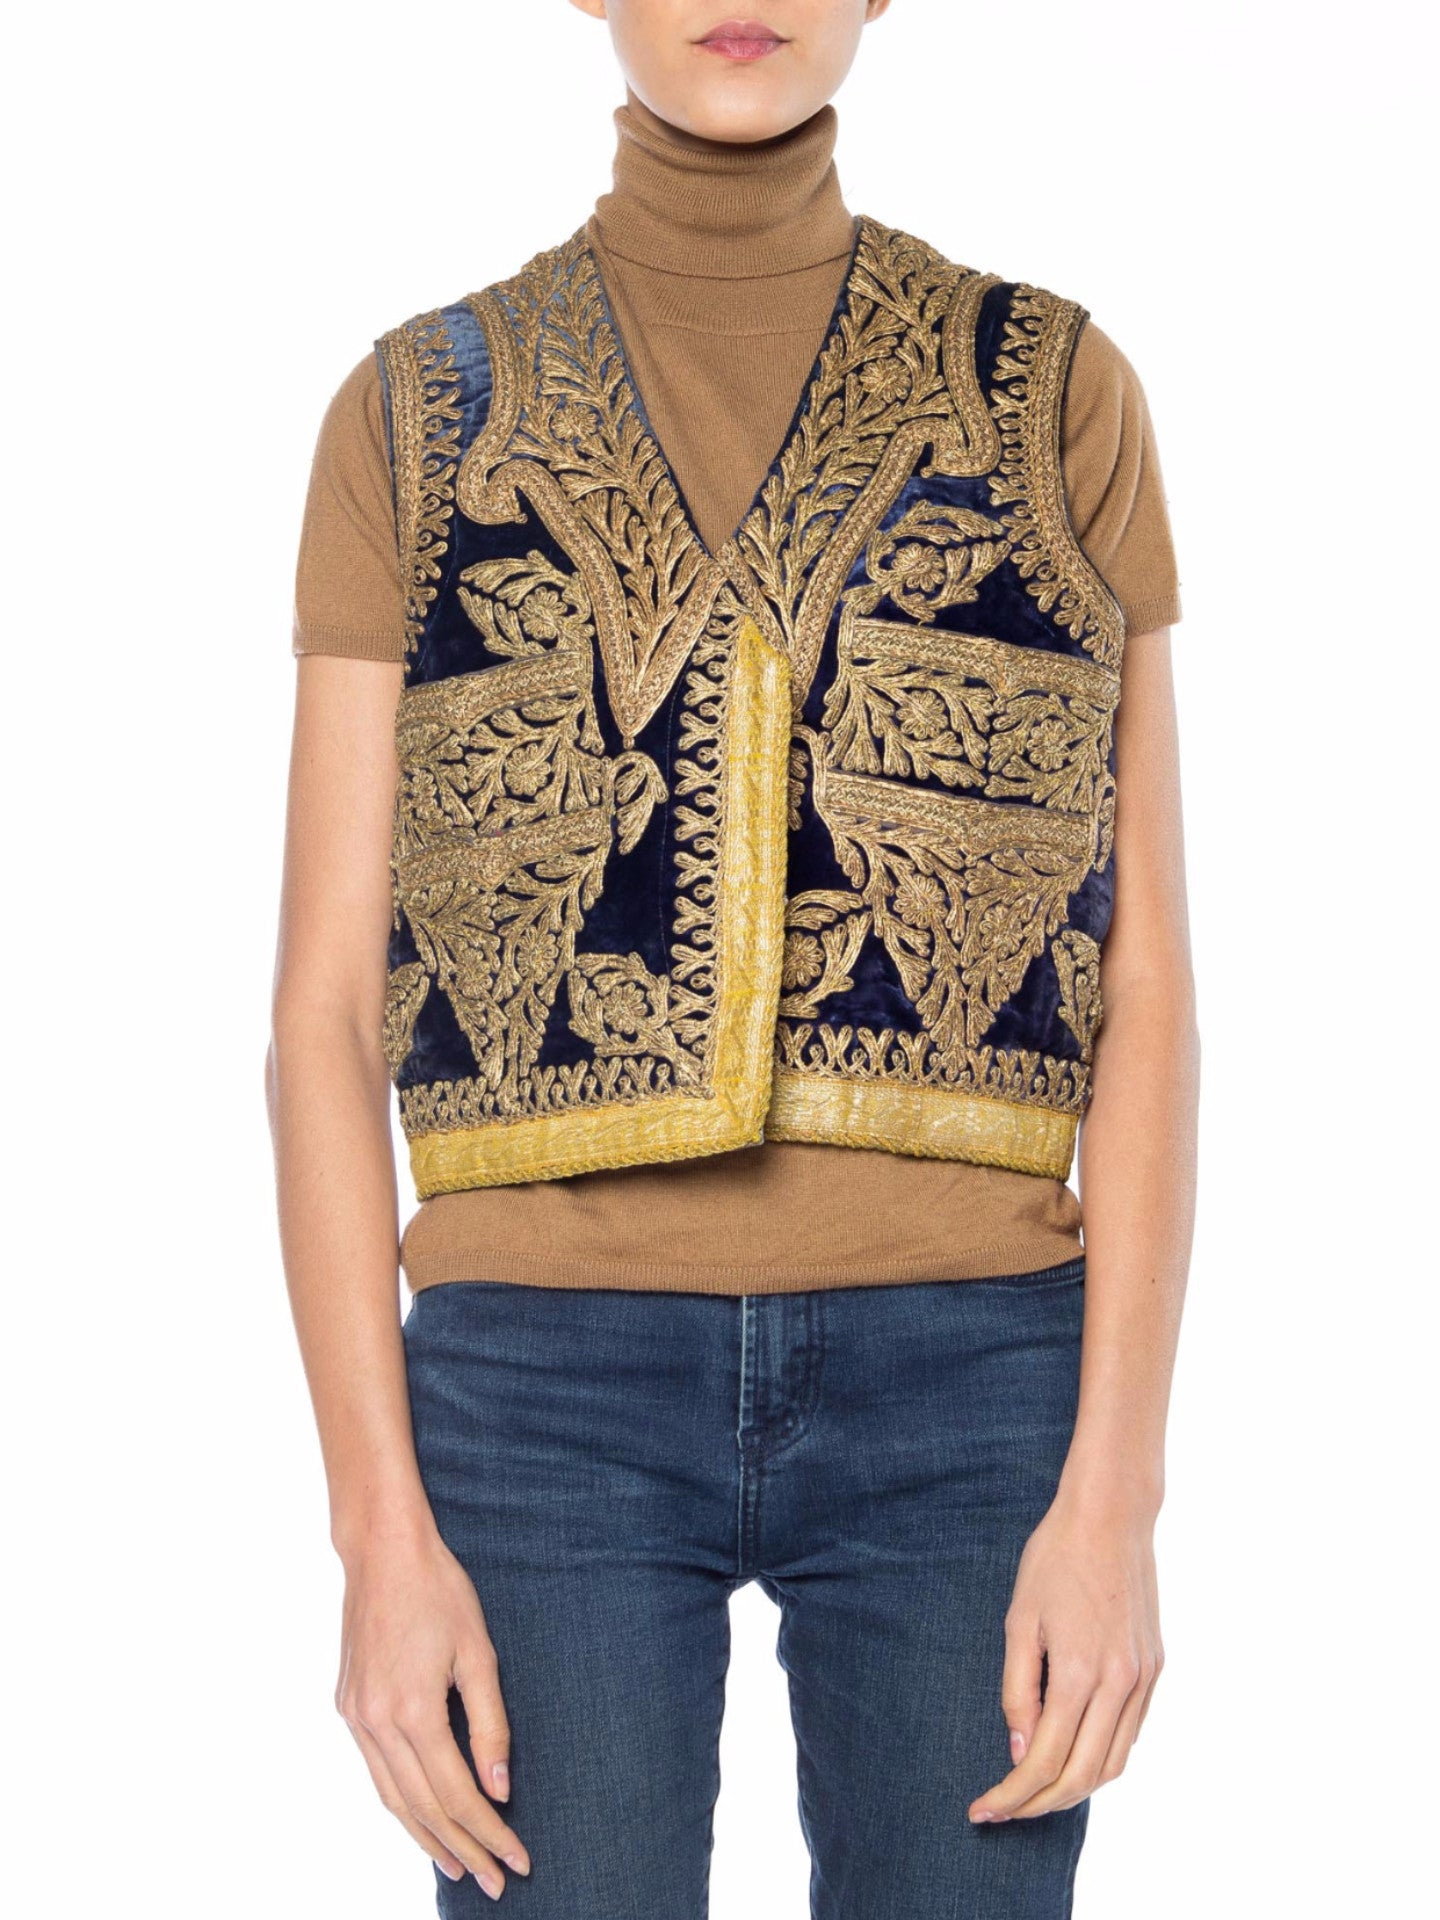 1920S Blue Velvet Mens Boho Vest With Gold Braid Hand Embroidery